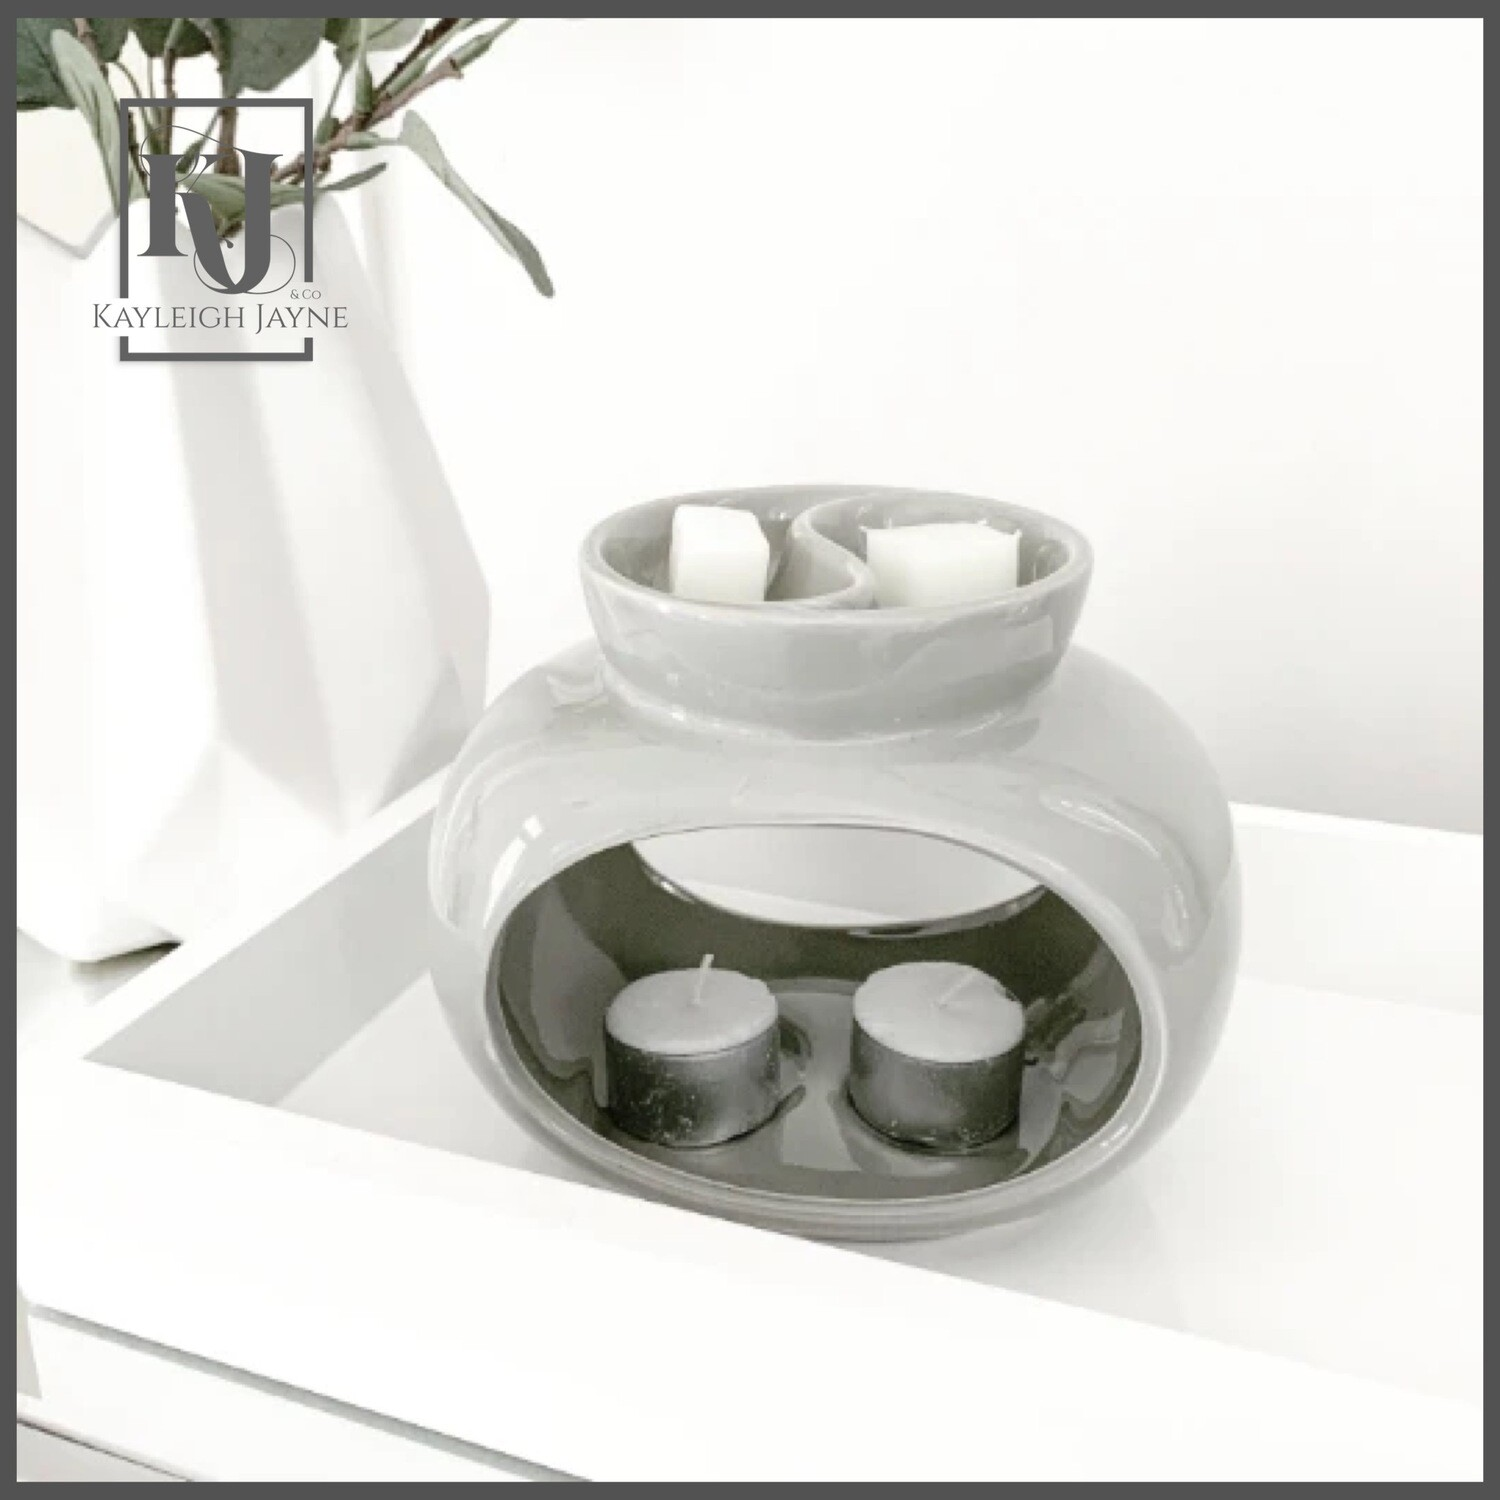 Ceramic Wax Melt Burner - Deluxe Rome